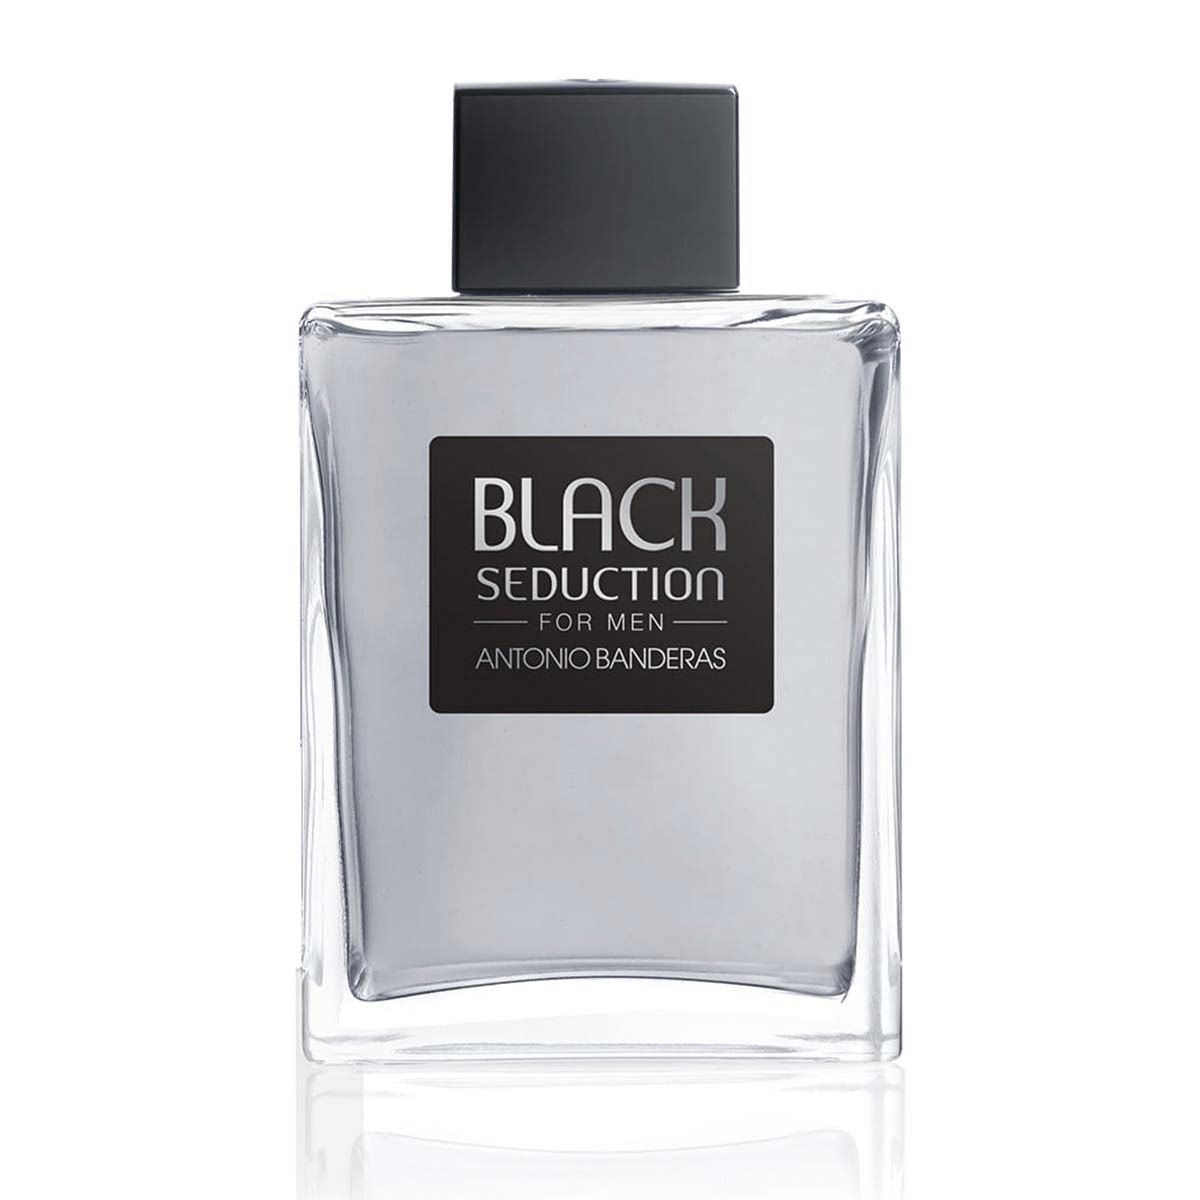 Fragancia para caballero, Antonio Banderas, Black Seduction, EDT 200ml